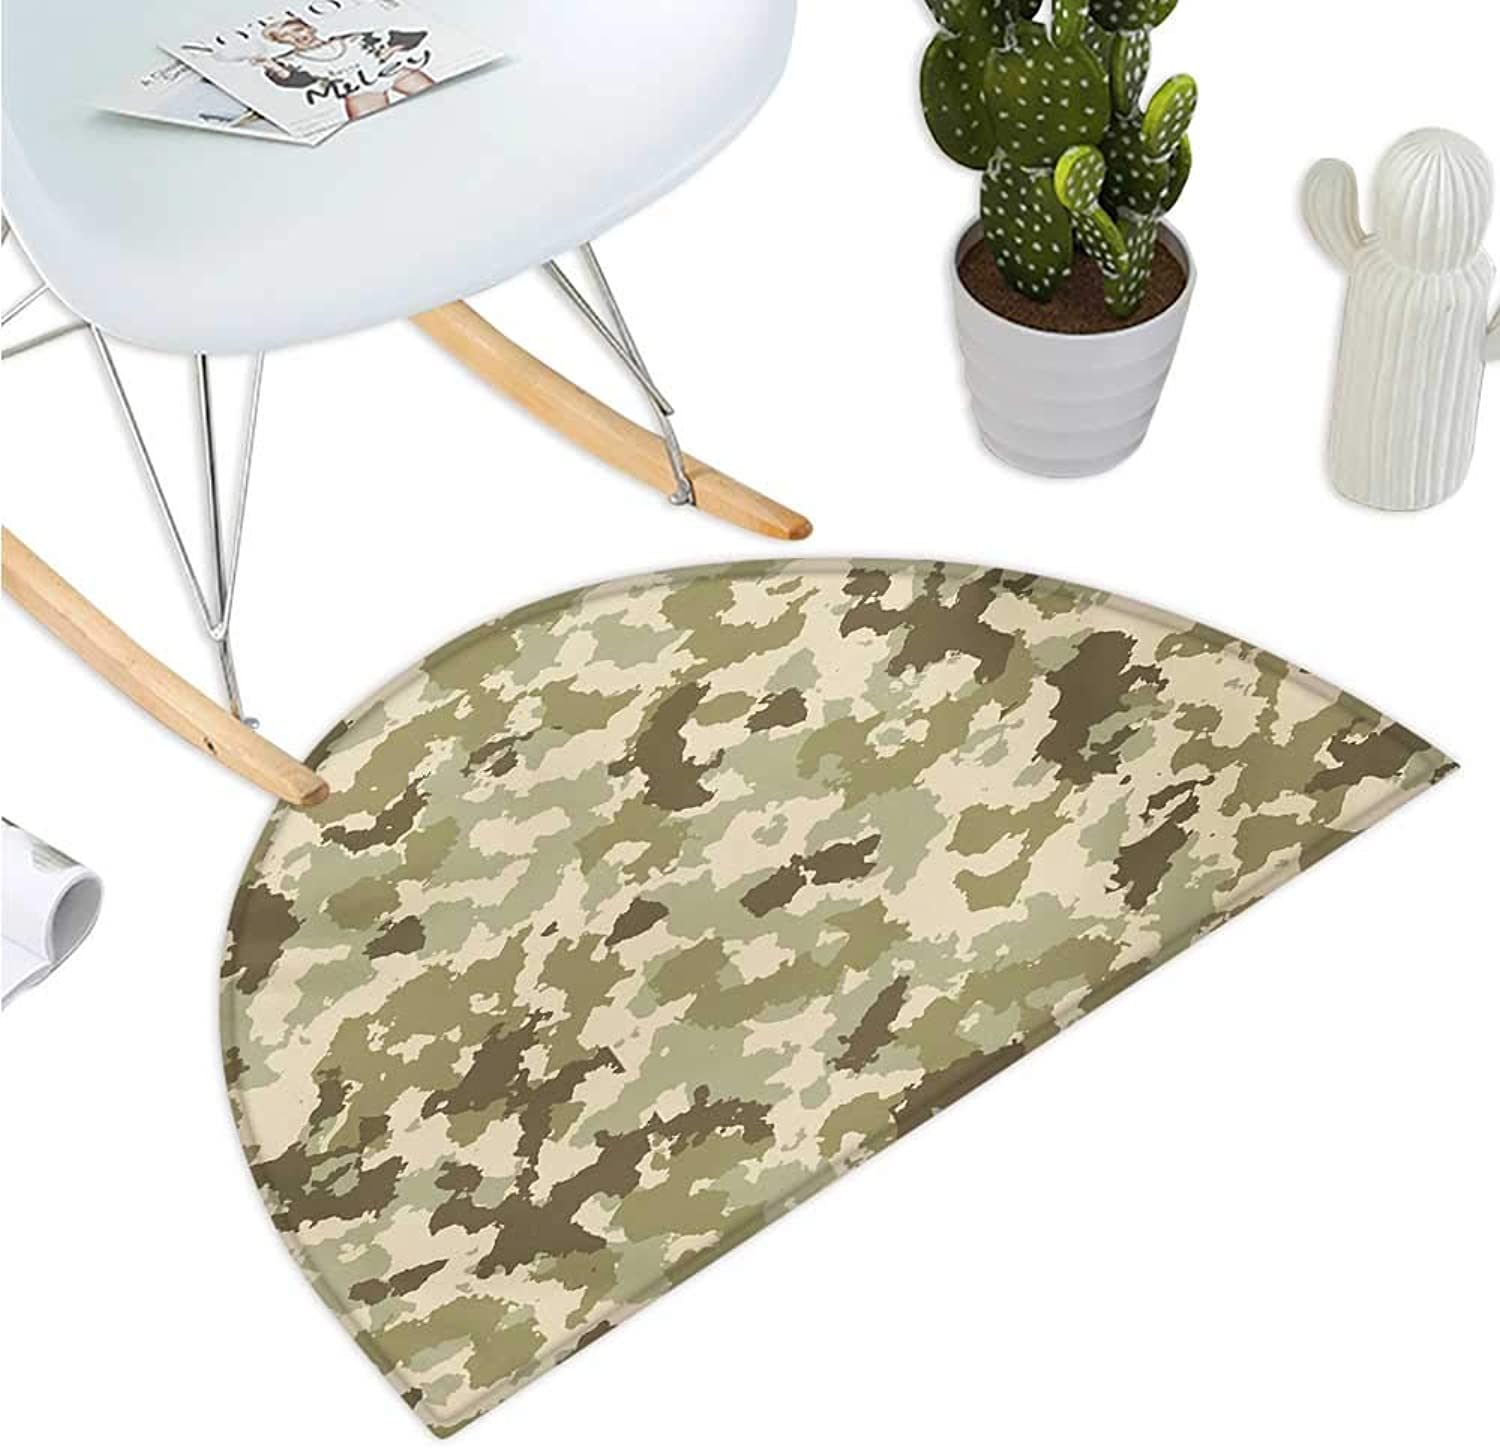 Camo Semicircular Cushion Old Fashioned Camouflage Pattern Classical Jungle Survival Theme Entry Door Mat H 35.4  xD 53.1  Army Green Pale Green Cream